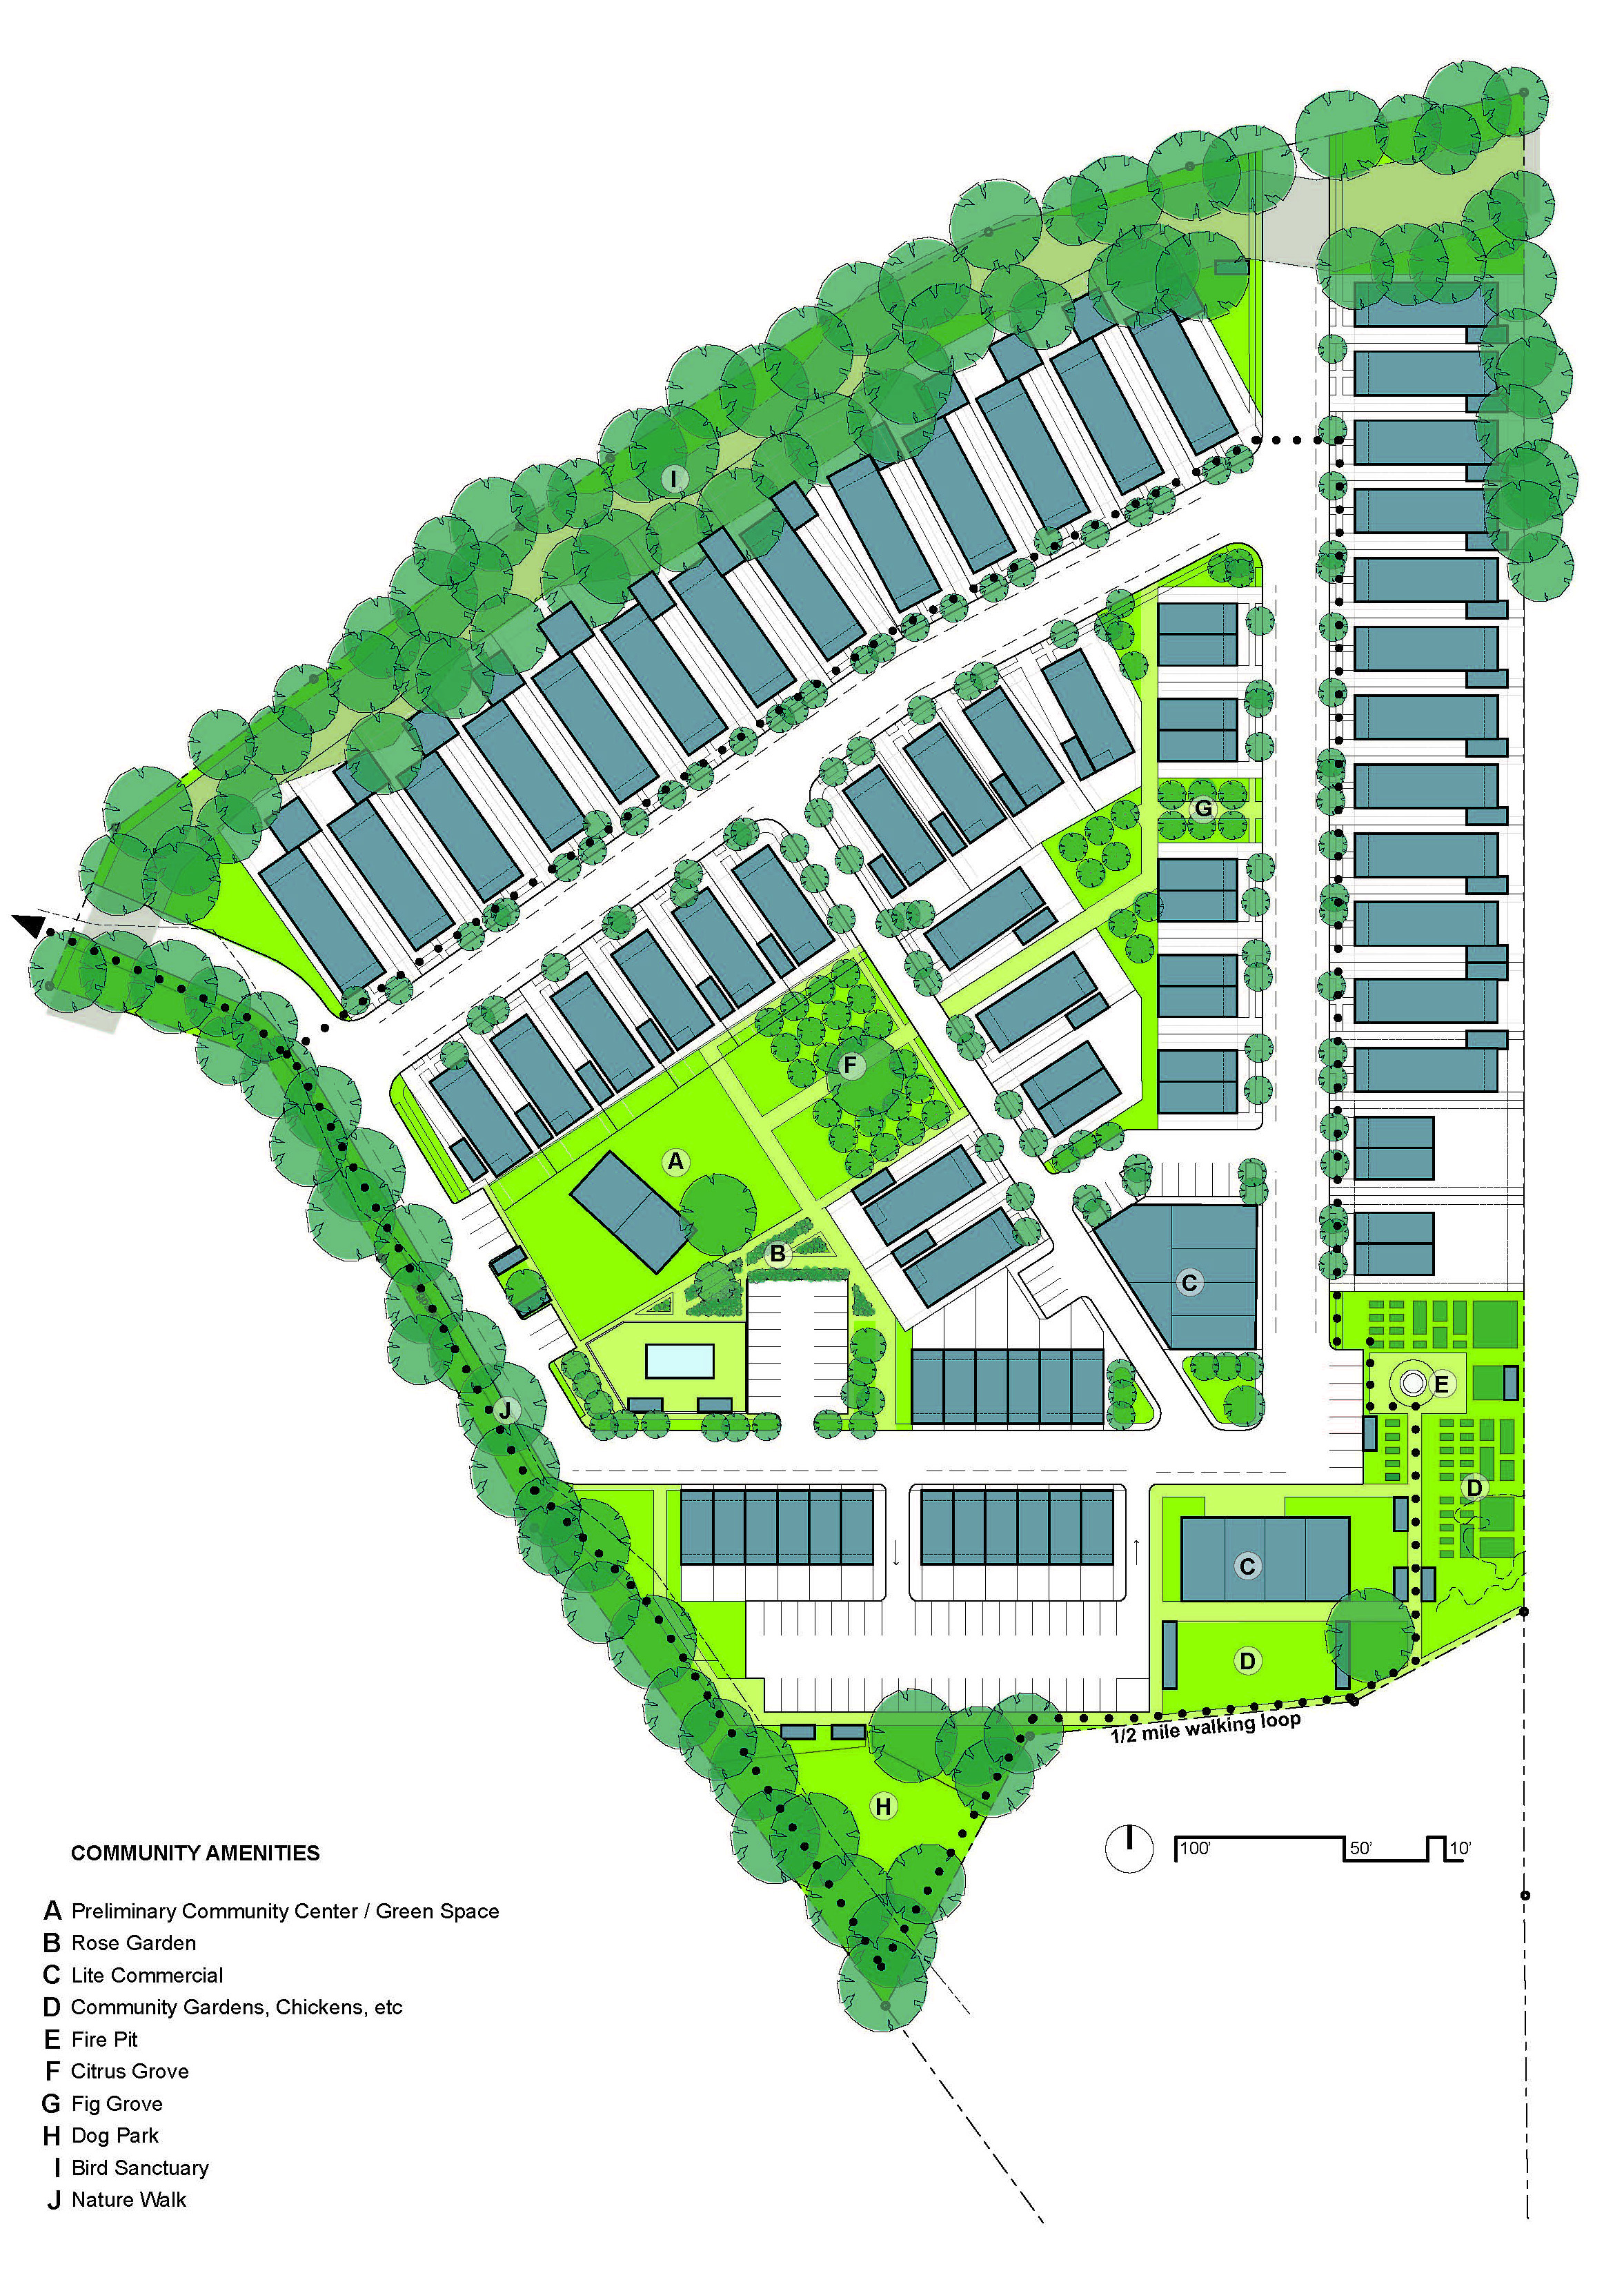 FARM_Parcel 01_Master Plan Illustrated_4_4_18.jpg